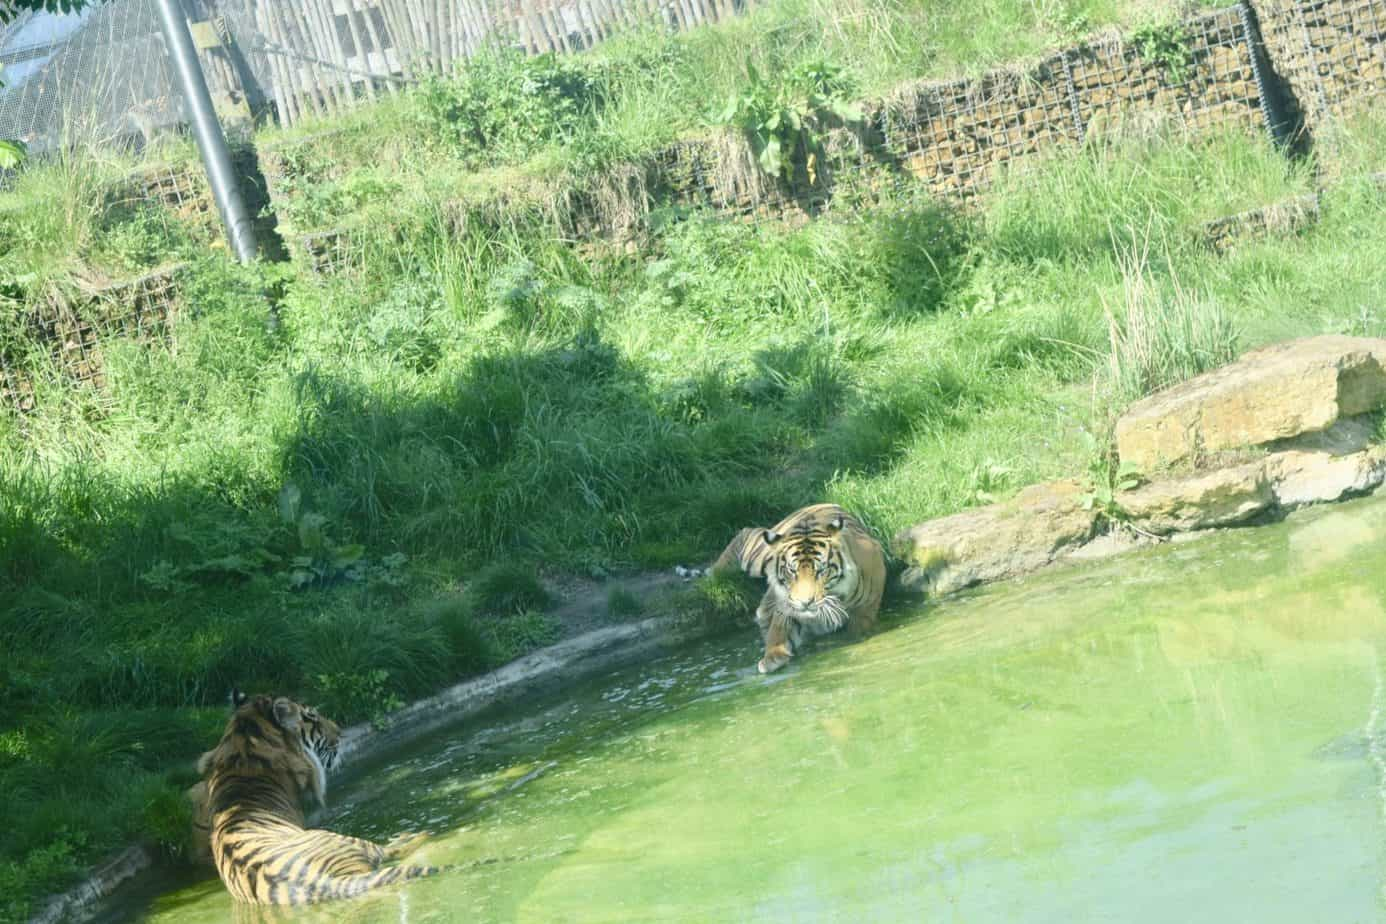 See the Tigers wading in their lake